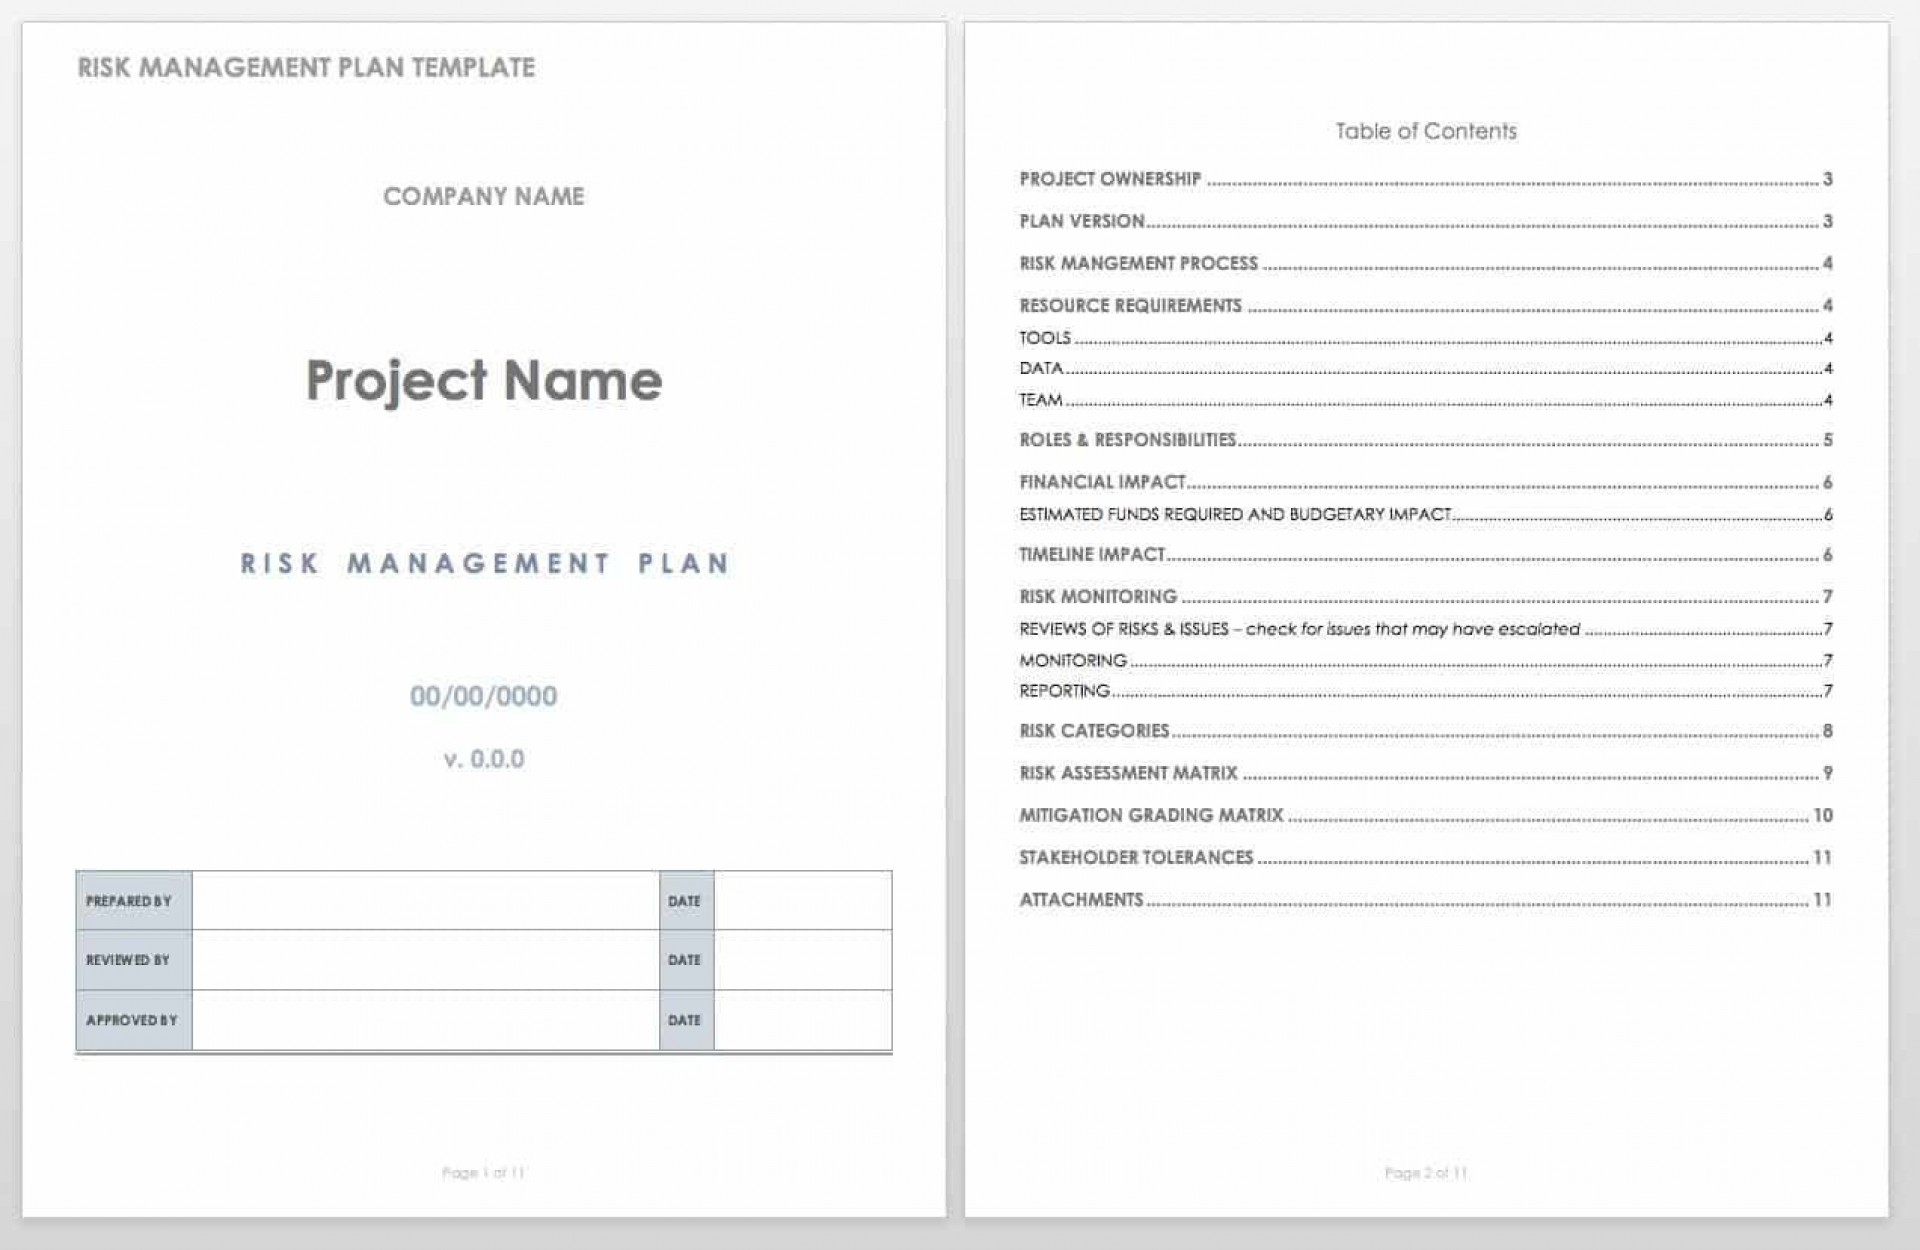 004 Stirring Project Risk Management Plan Template Word Highest Quality 1920